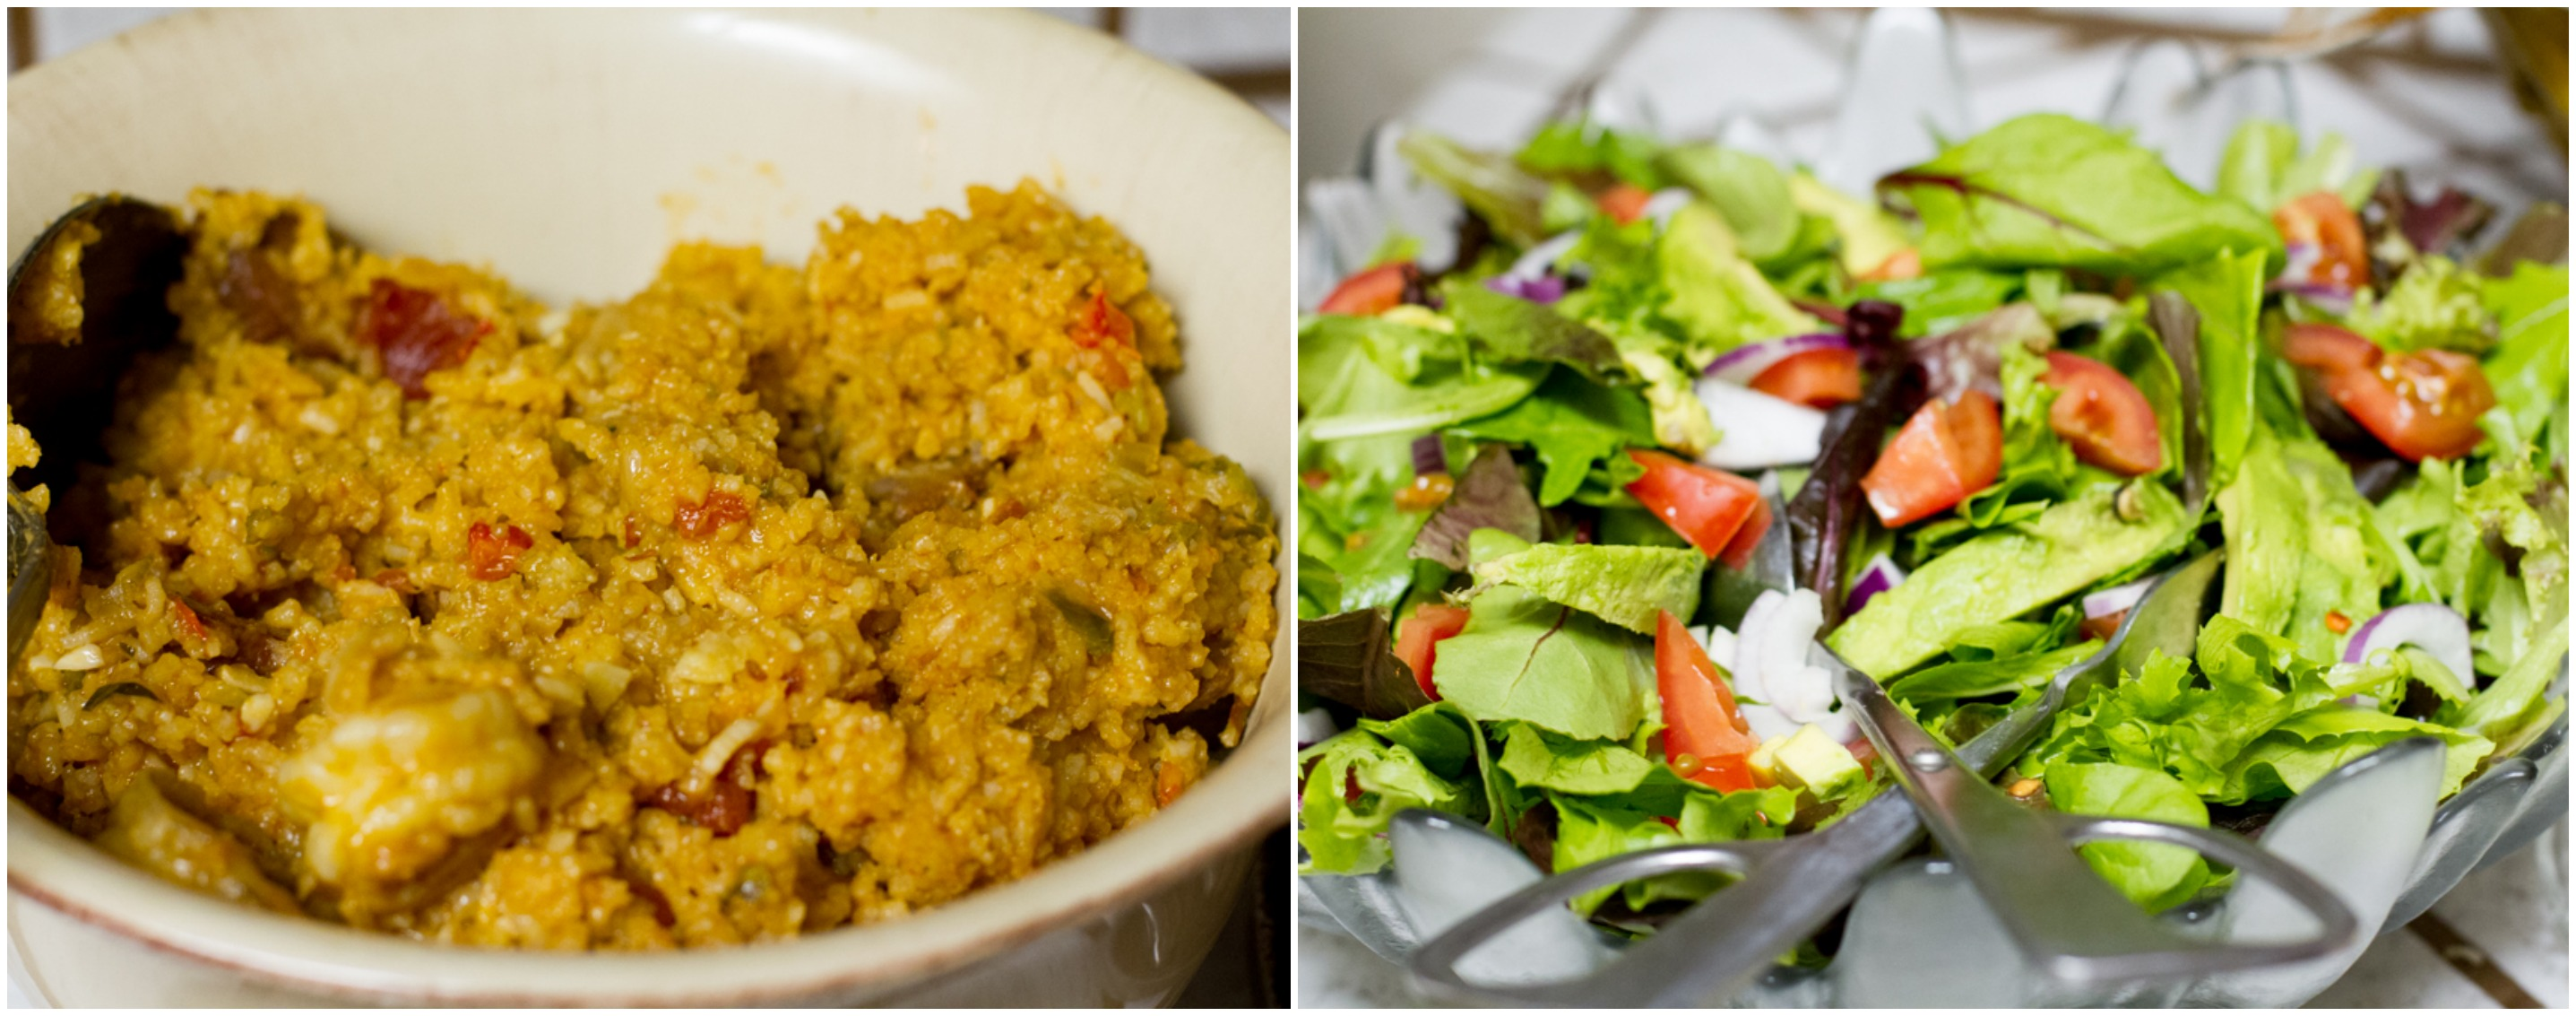 Jambalaya and Green Salad